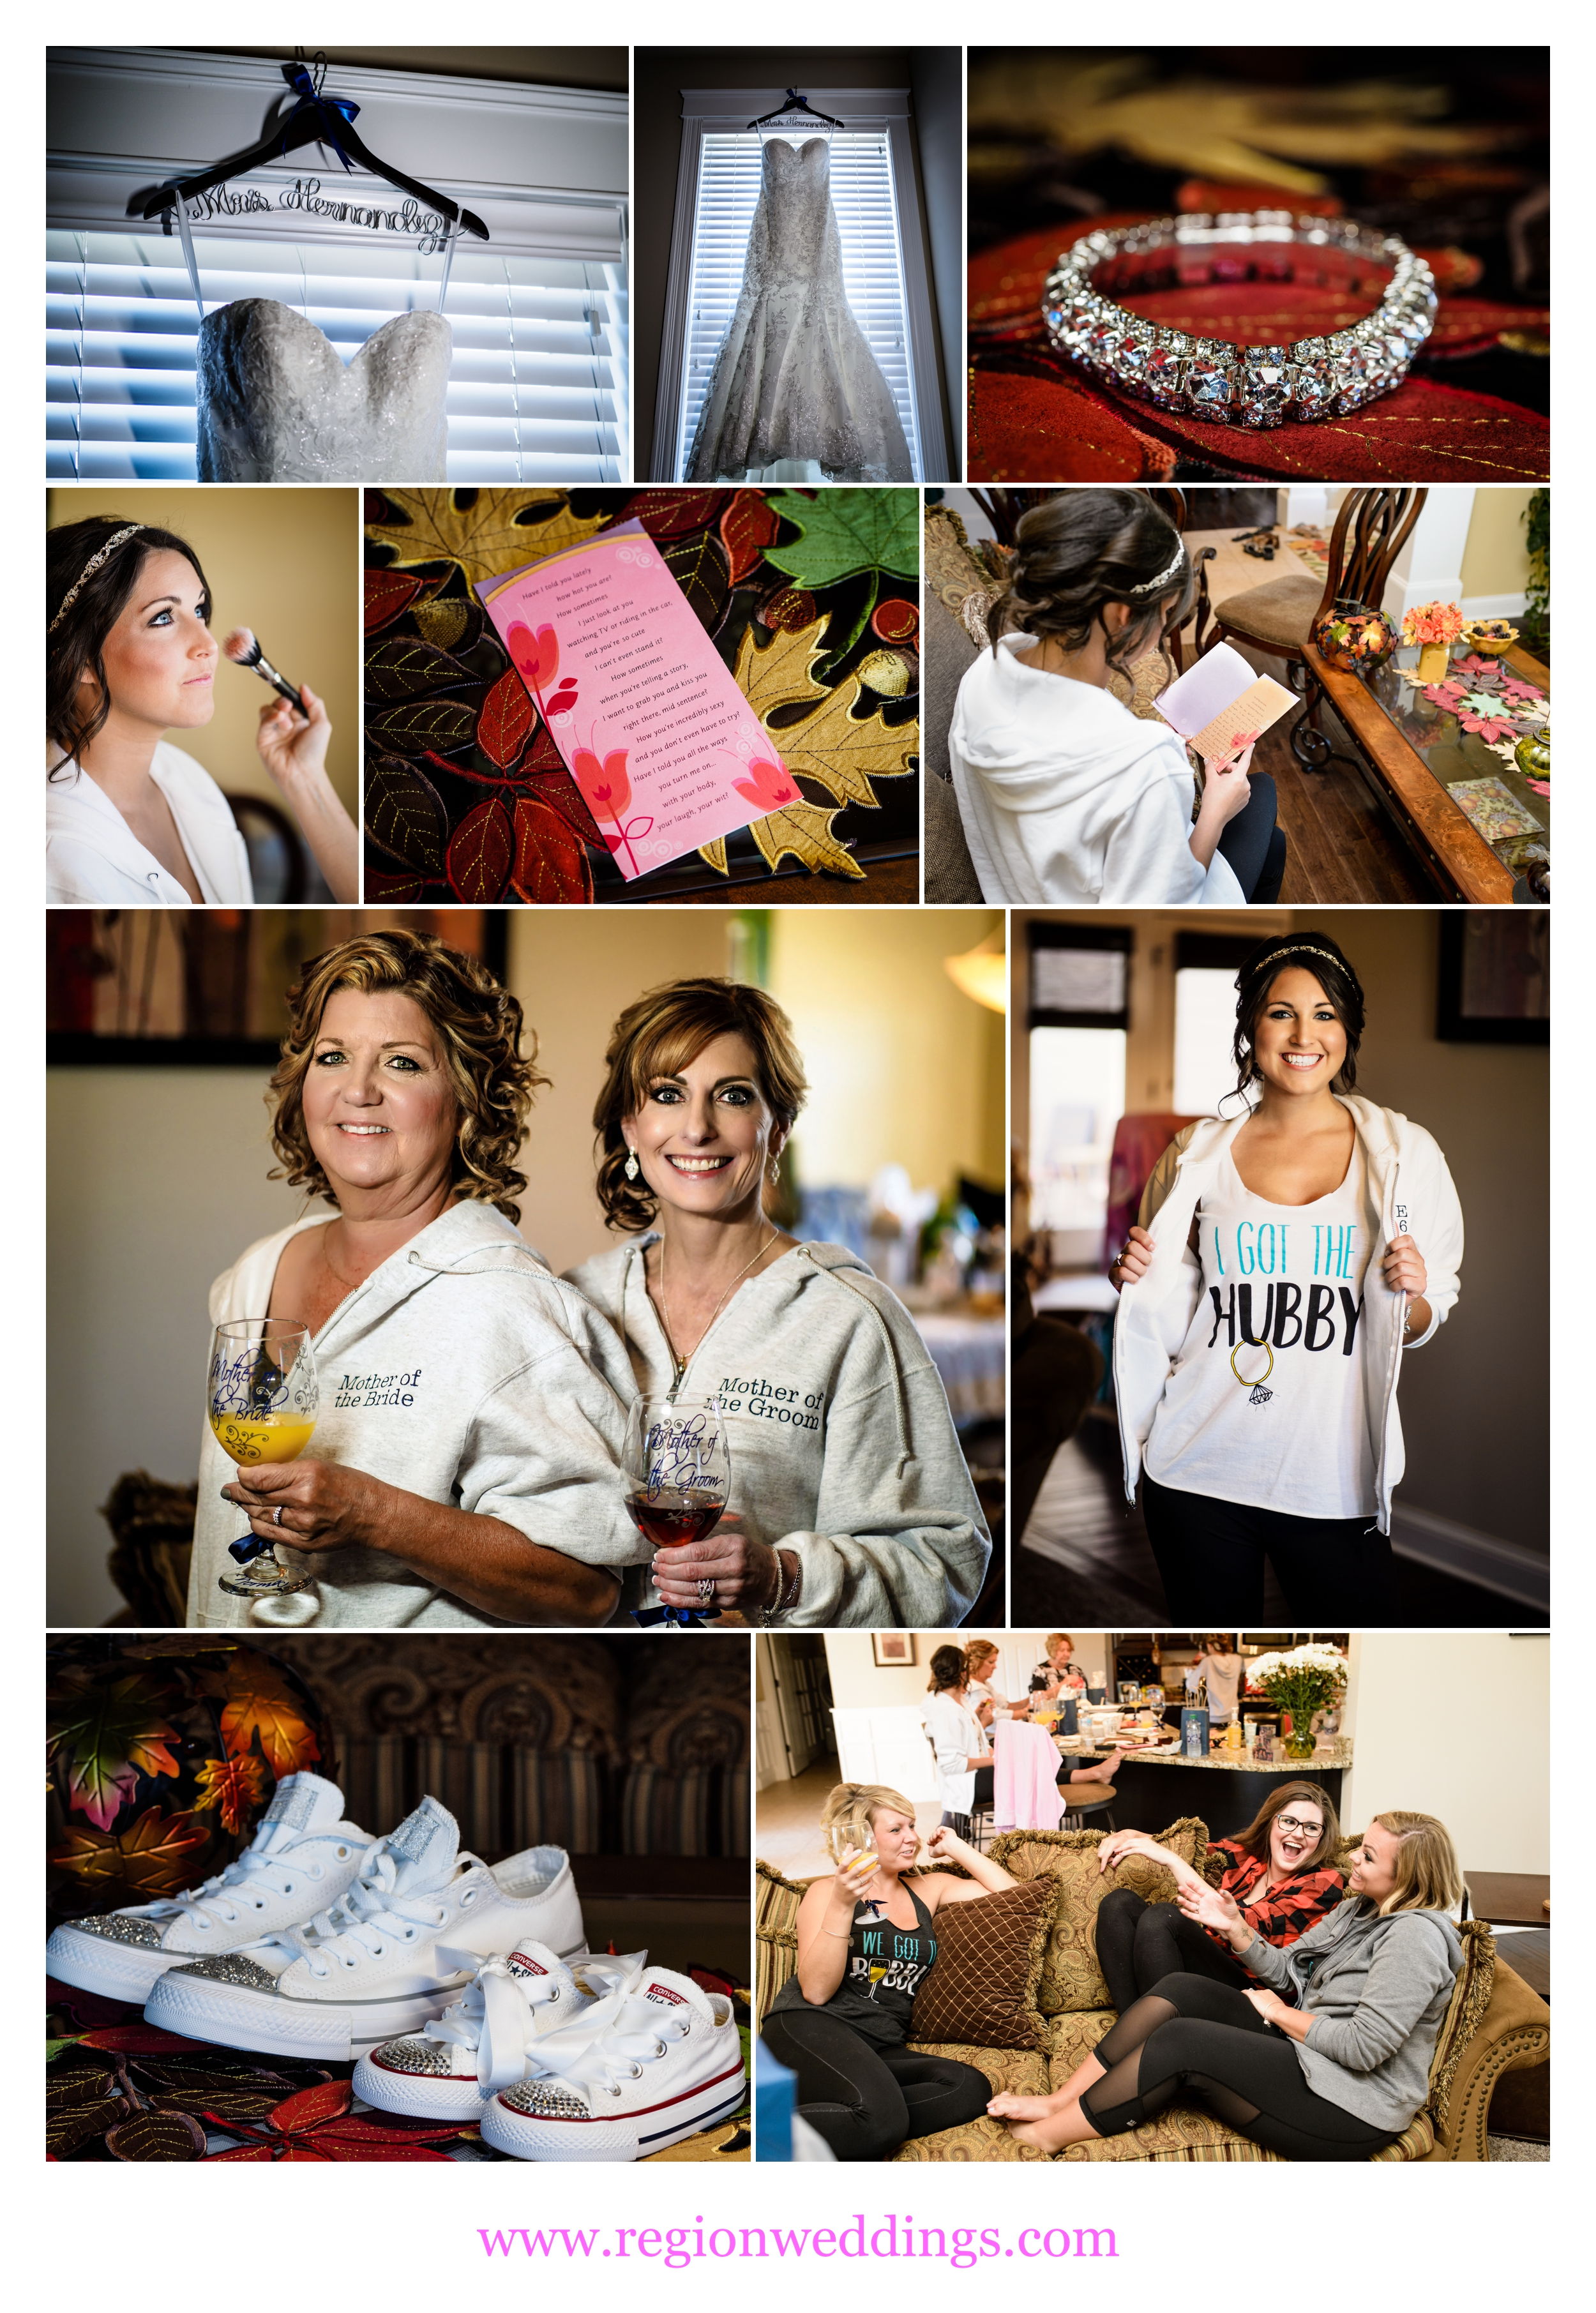 Bridal prep for an outdoor Fall wedding at Avalon Manor.